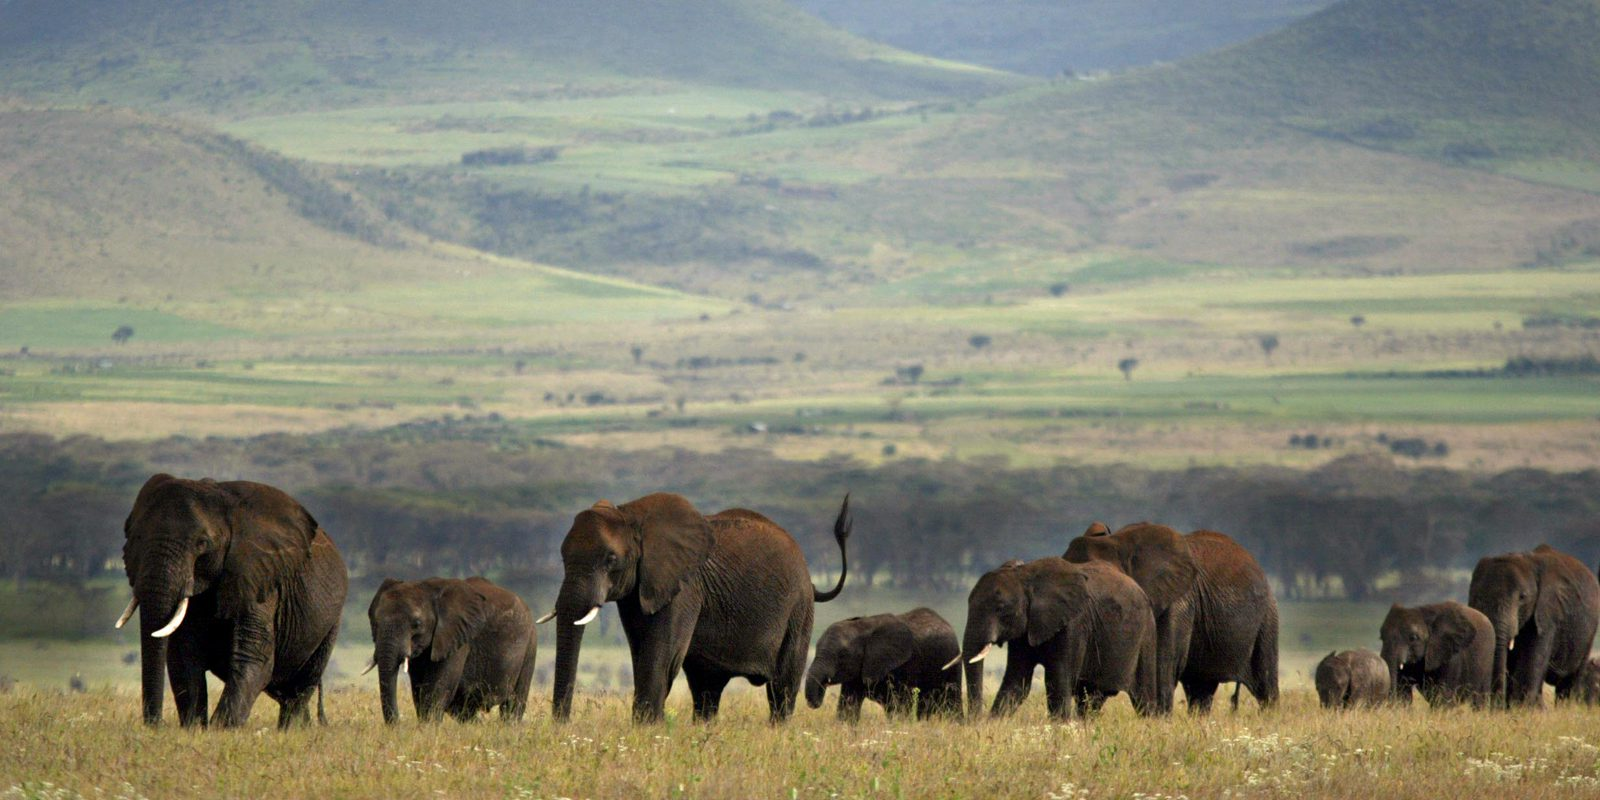 herd of elephants with Lewa's green hills in the background